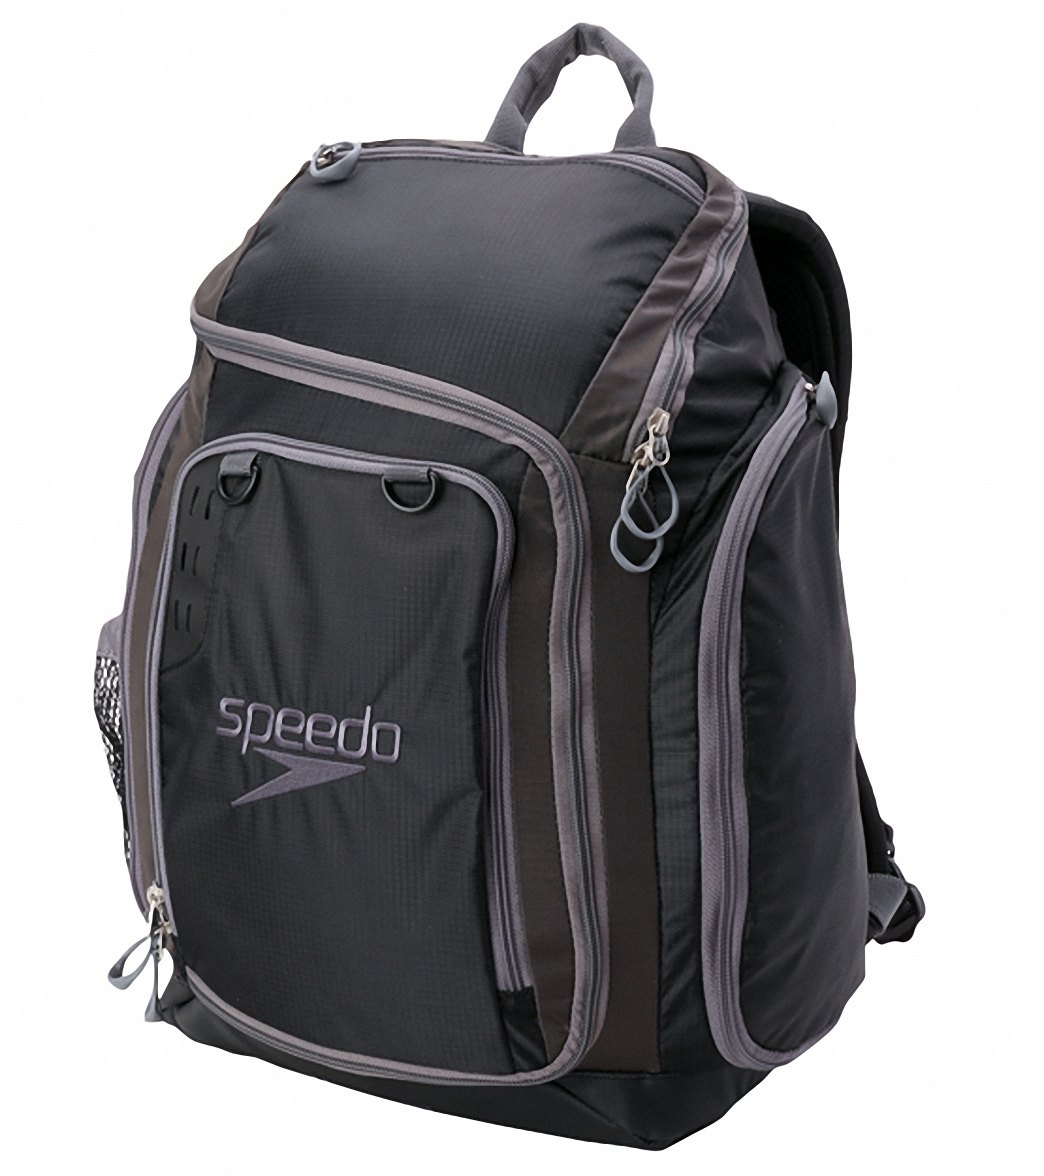 b76b0bf3683 Speedo The One Backpack at SwimOutlet.com - Free Shipping